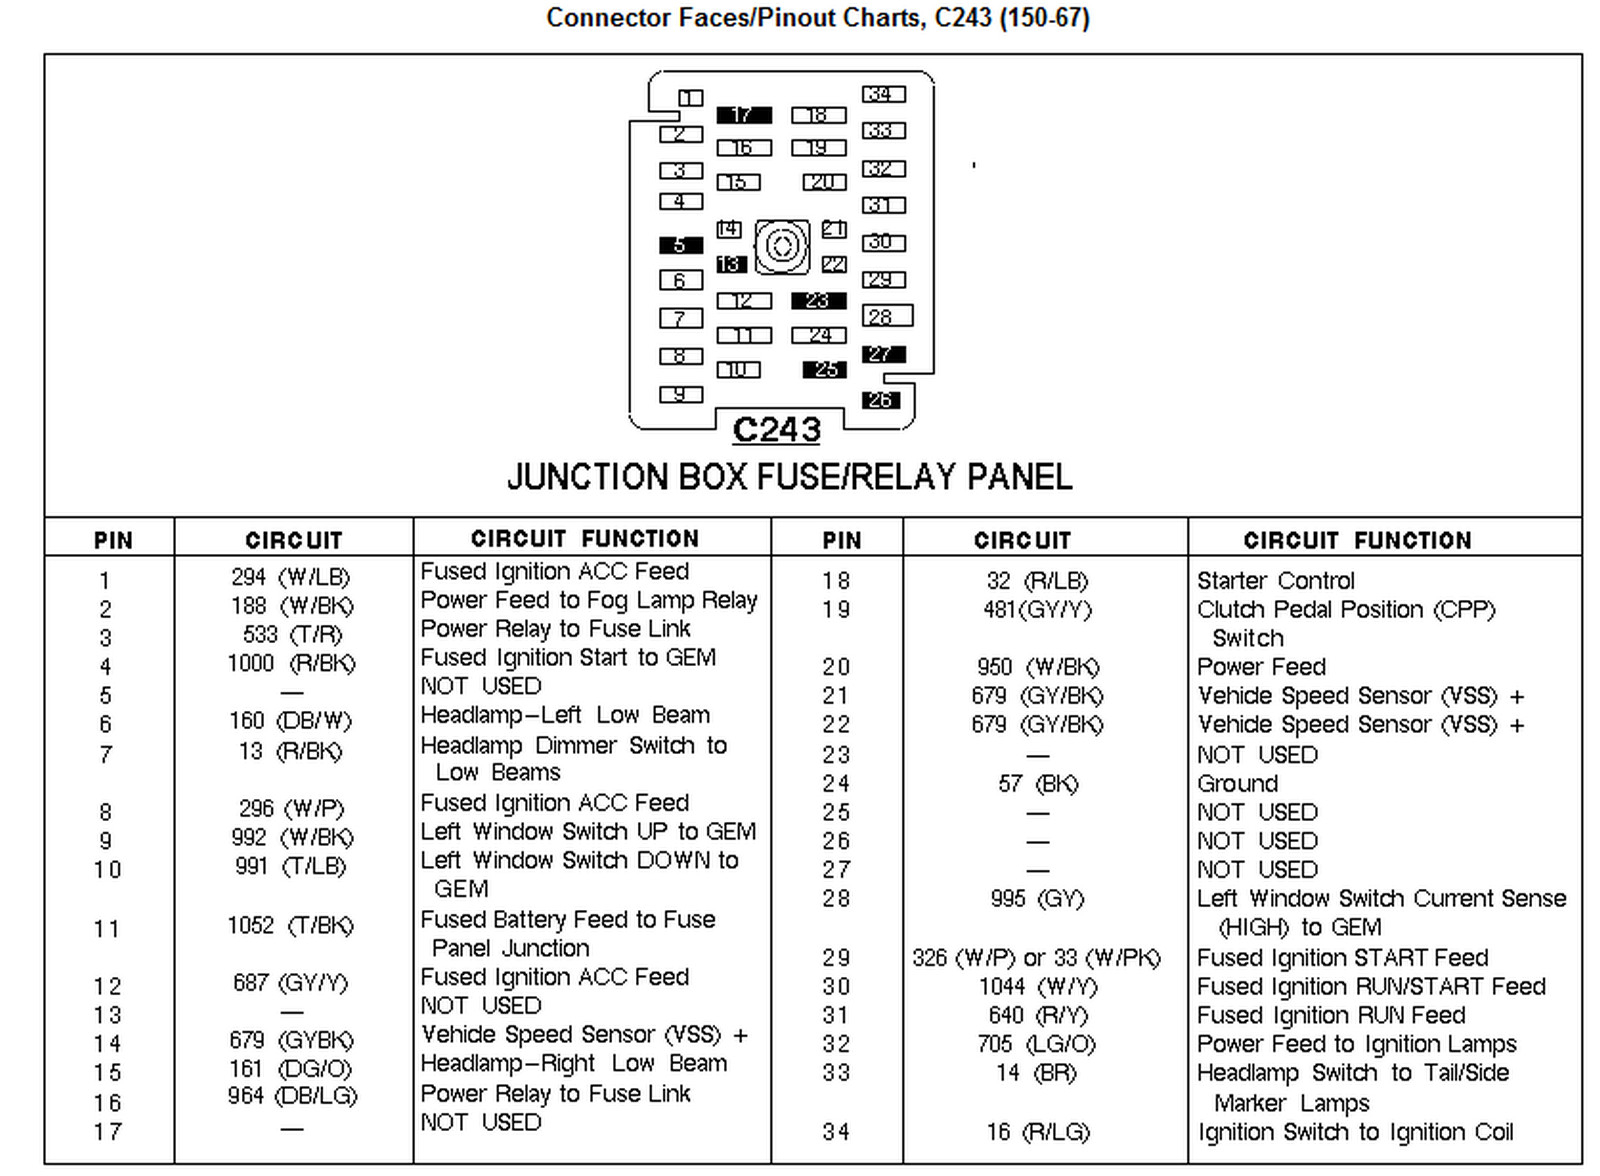 2008 Ford F150 Fuse Box Diagram Ford Expedition Fuse Panel Diagram Under Hood Wiring Diagram Table